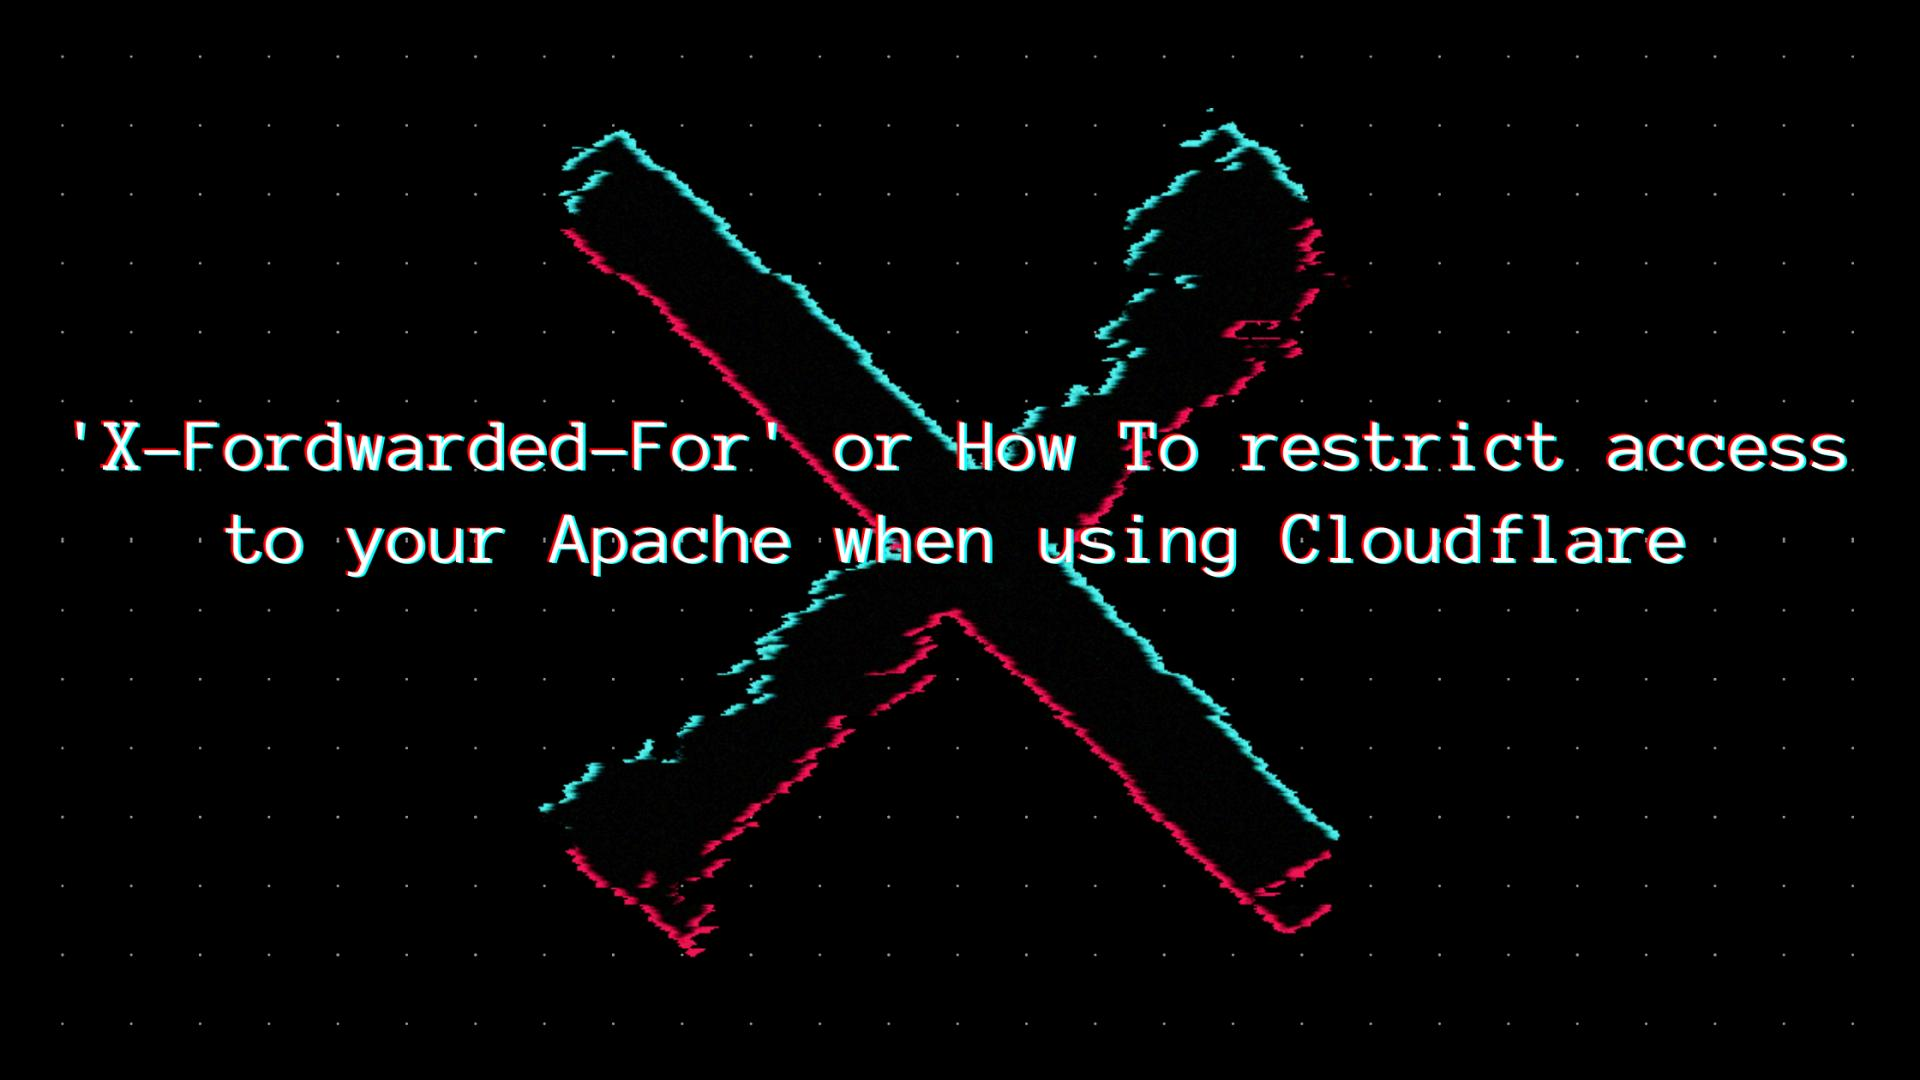 'X-Fordwarded-For' or How To restrict access to your Apache when using Cloudflare